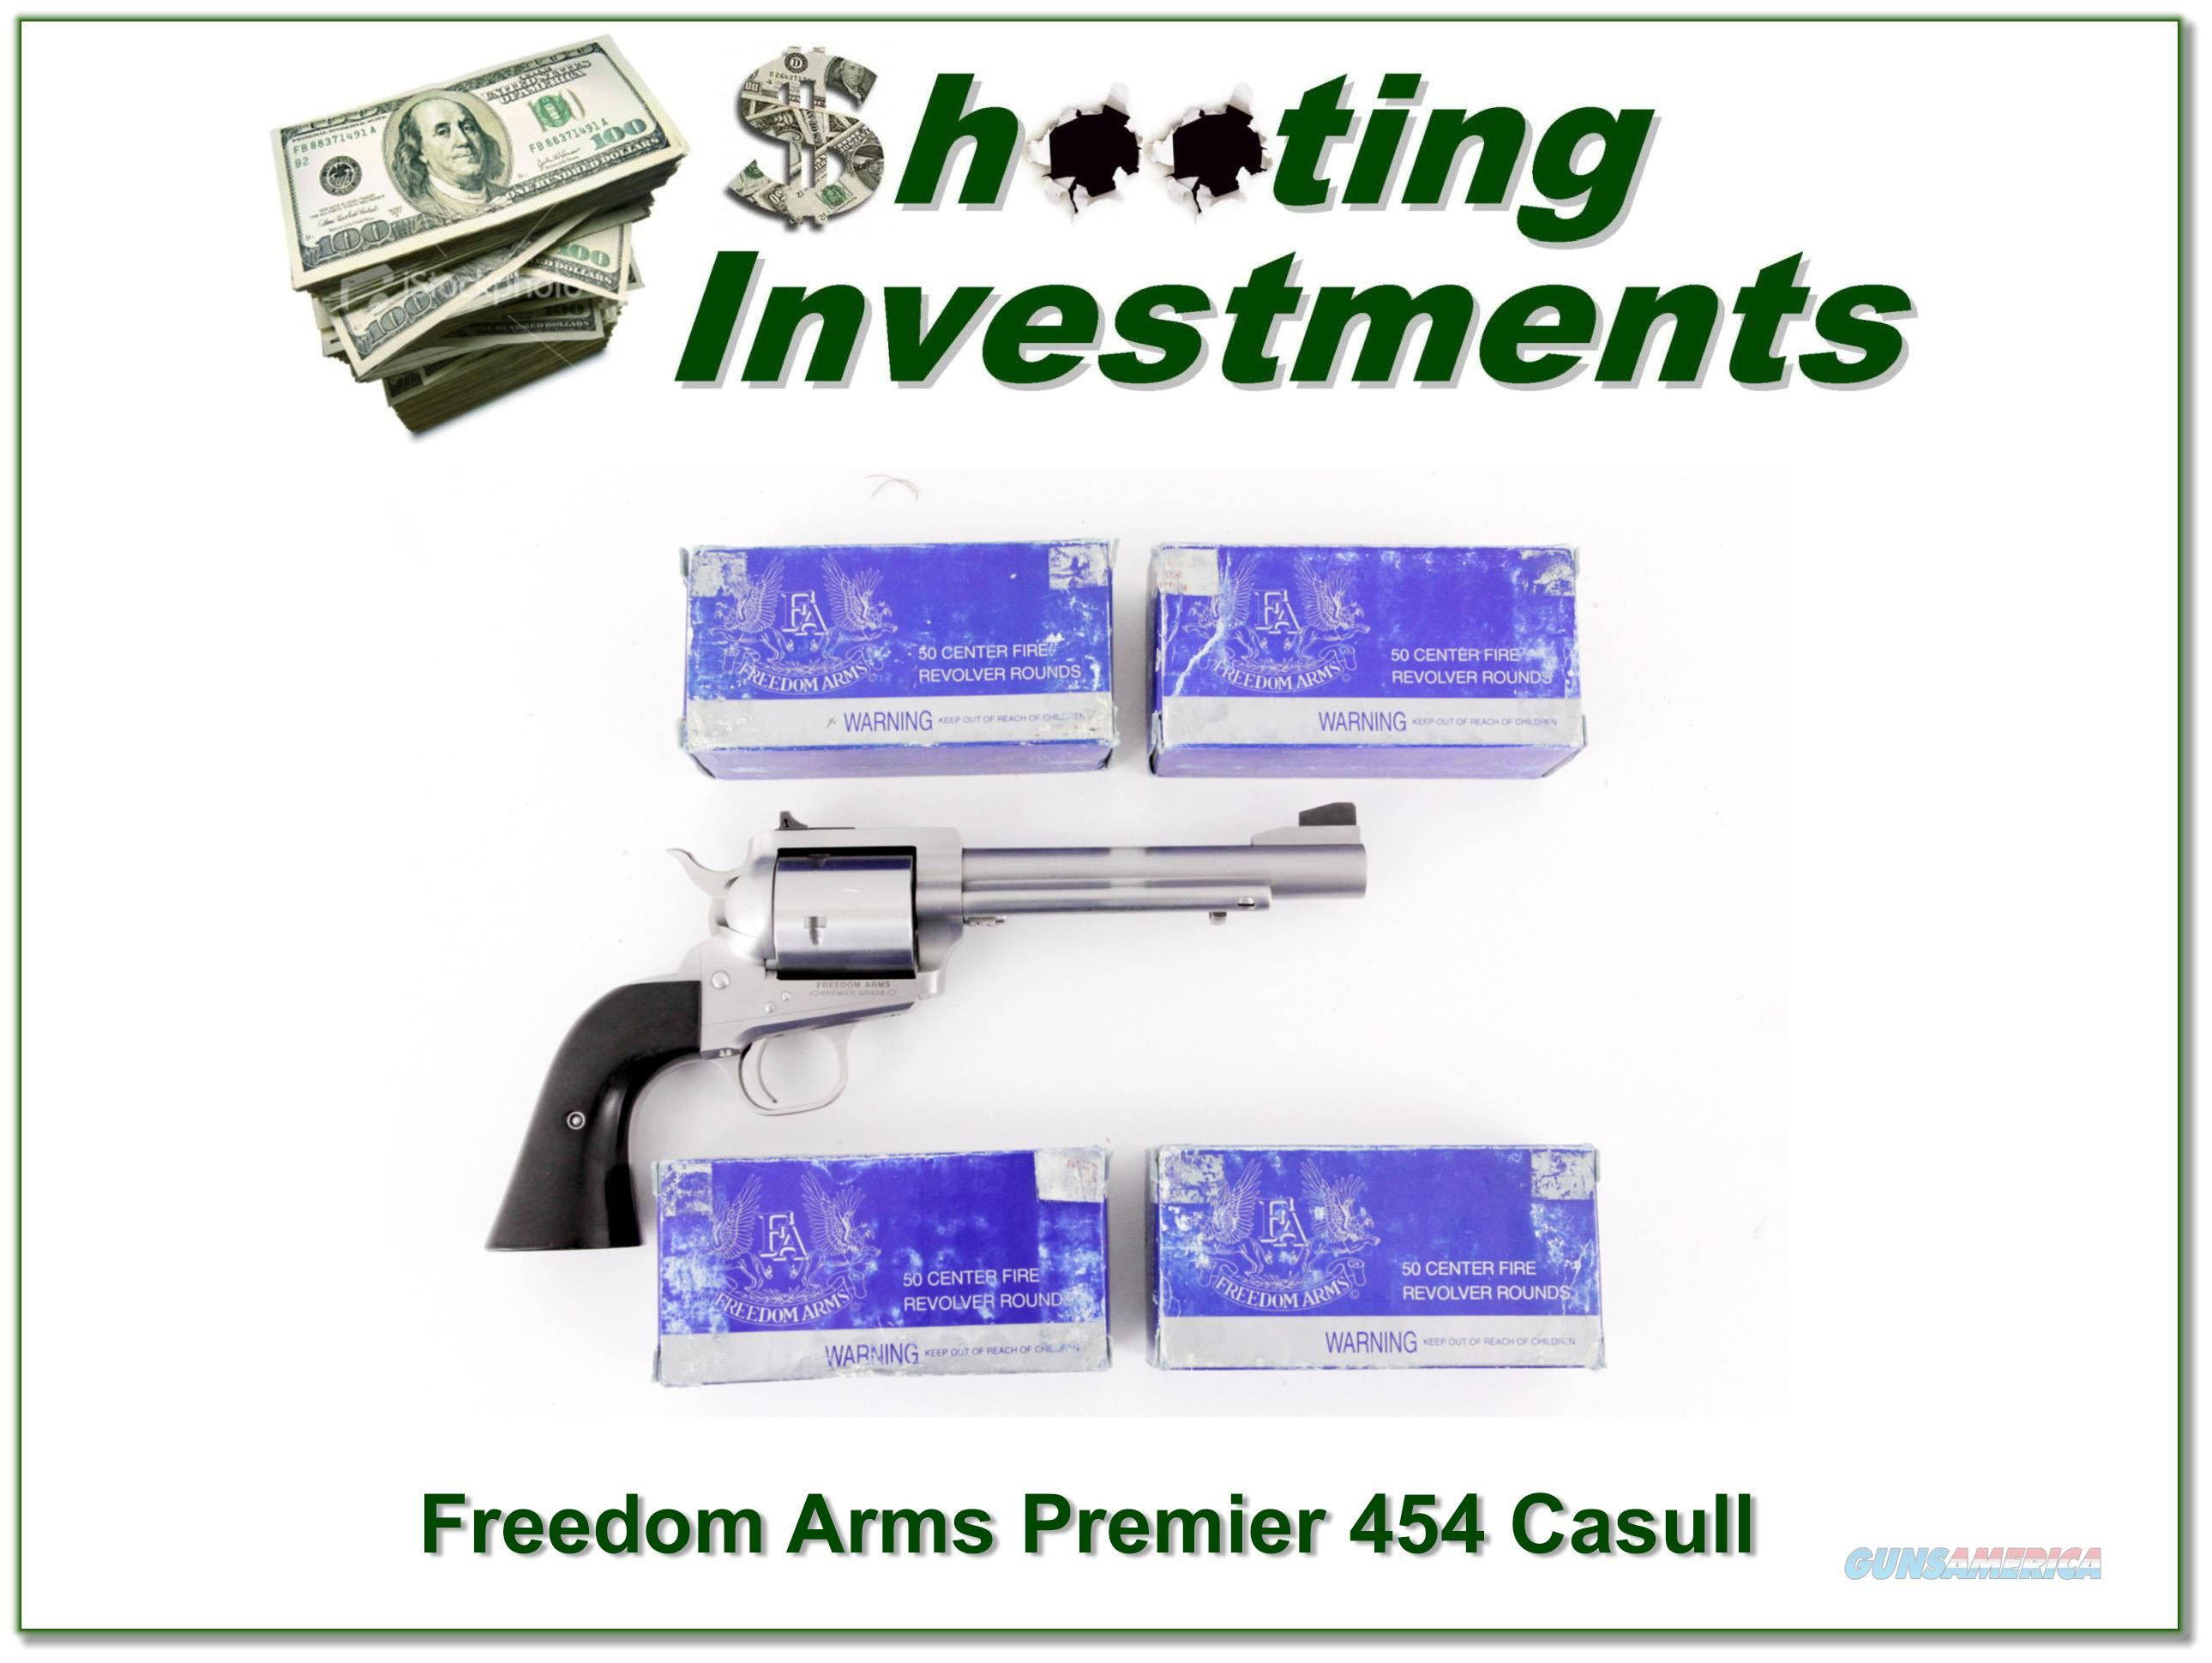 Freedom Arms Premier Grade 454 Casull with ammo  Guns > Pistols > Freedom Arms Pistols